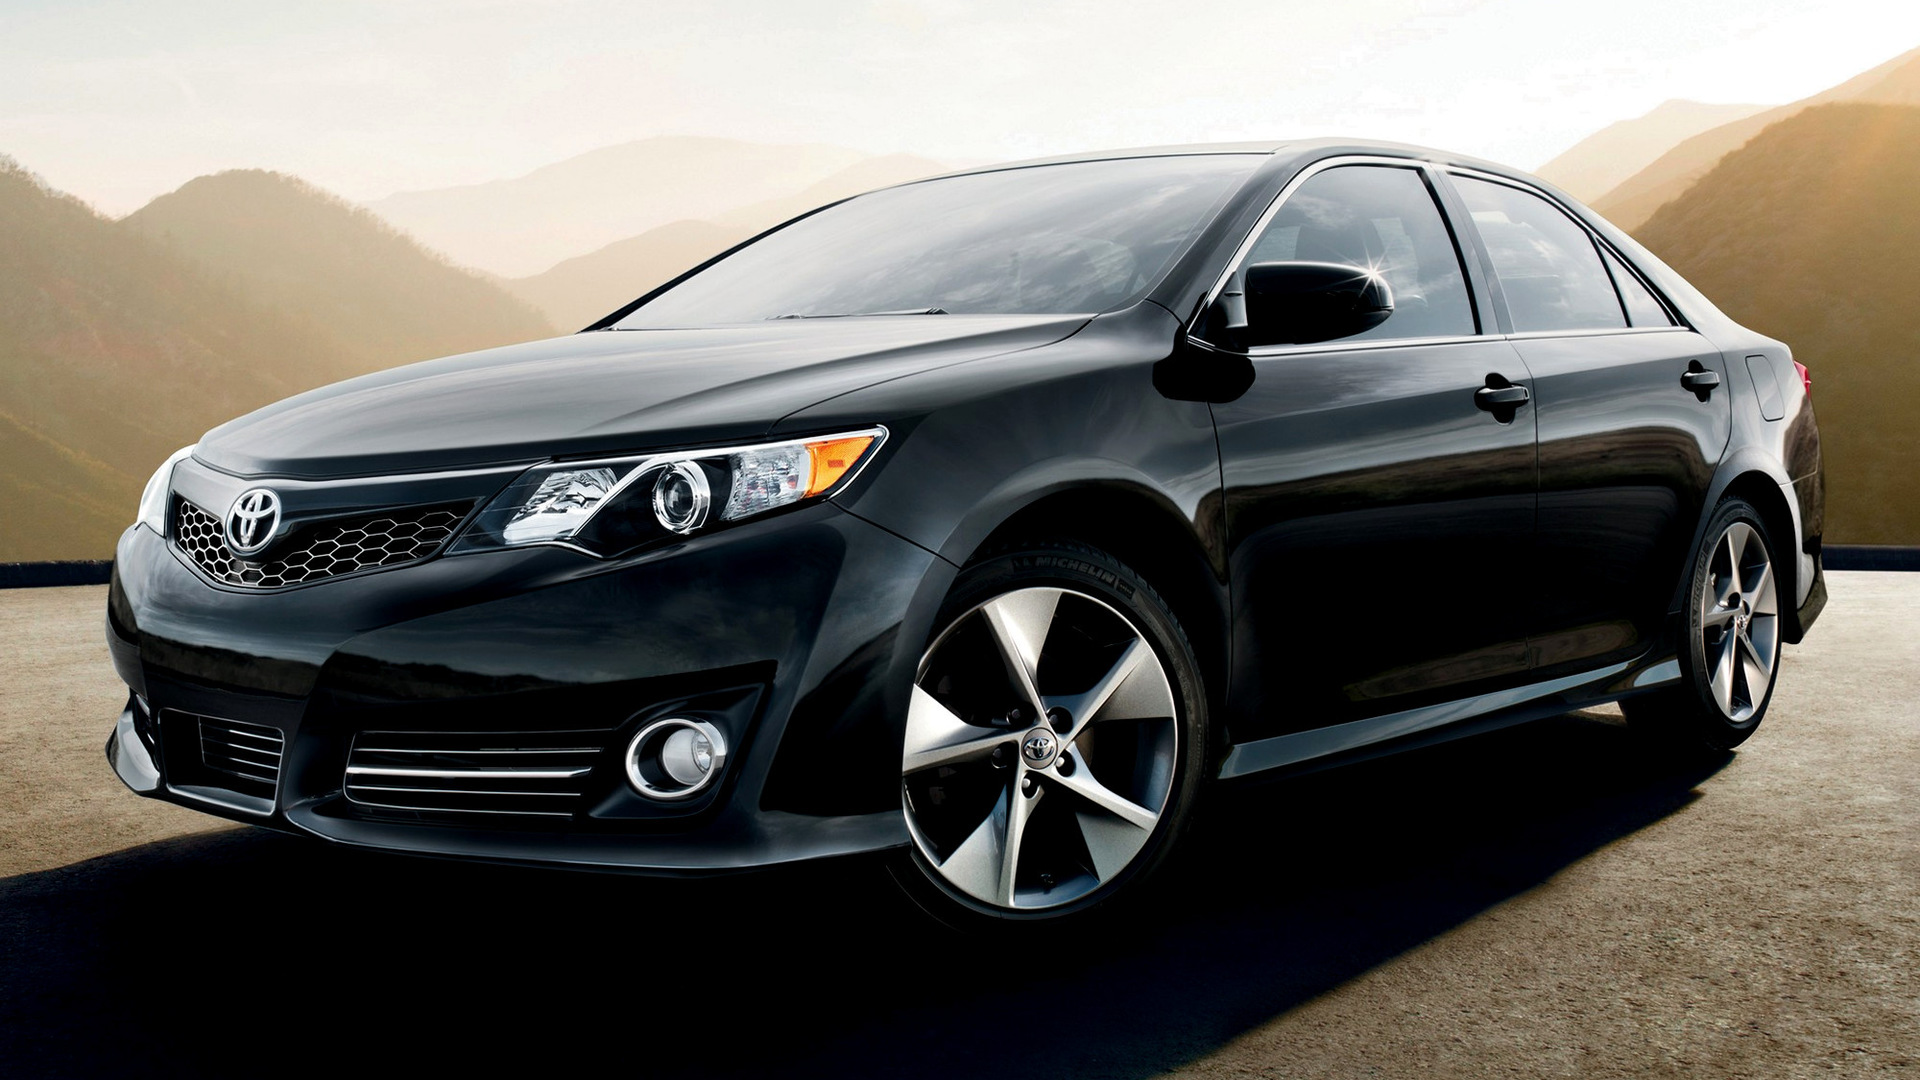 2011 Toyota Camry SE   Wallpapers and HD Images Car Pixel 1920x1080